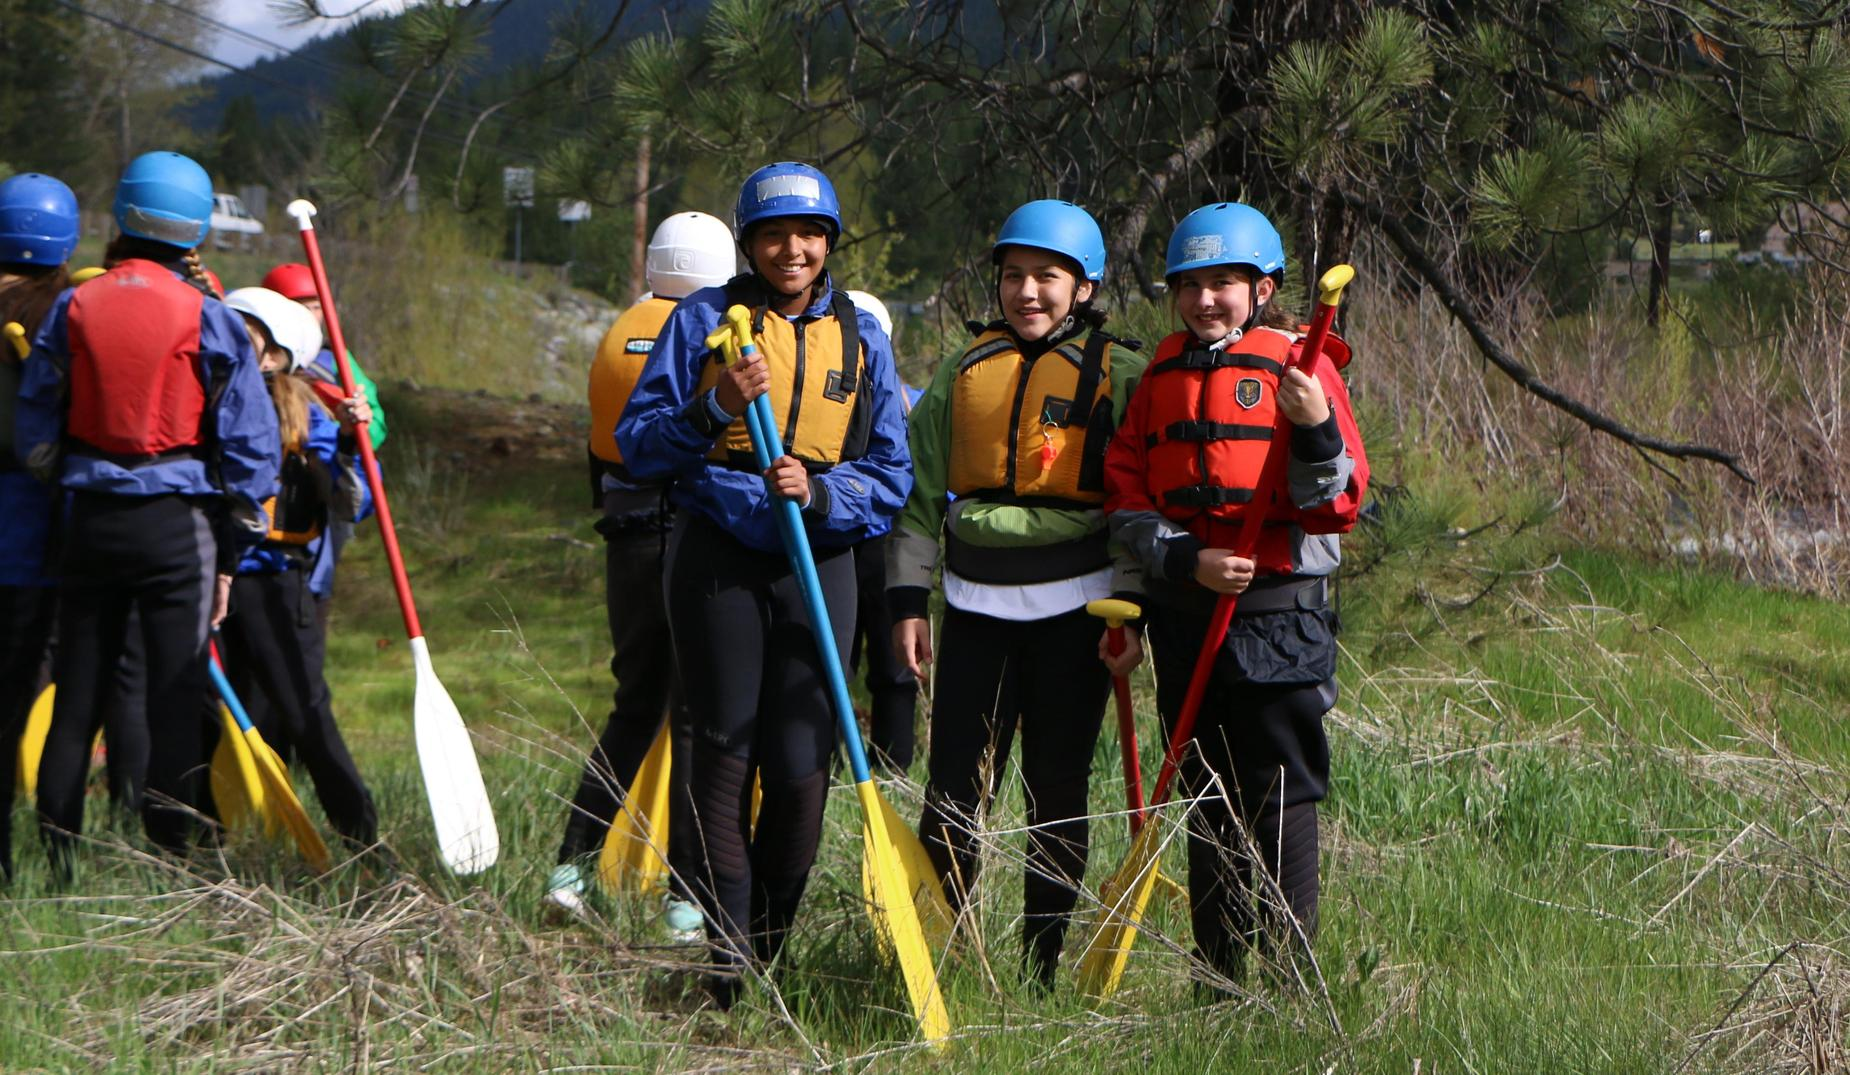 CRC safety gear for rafting